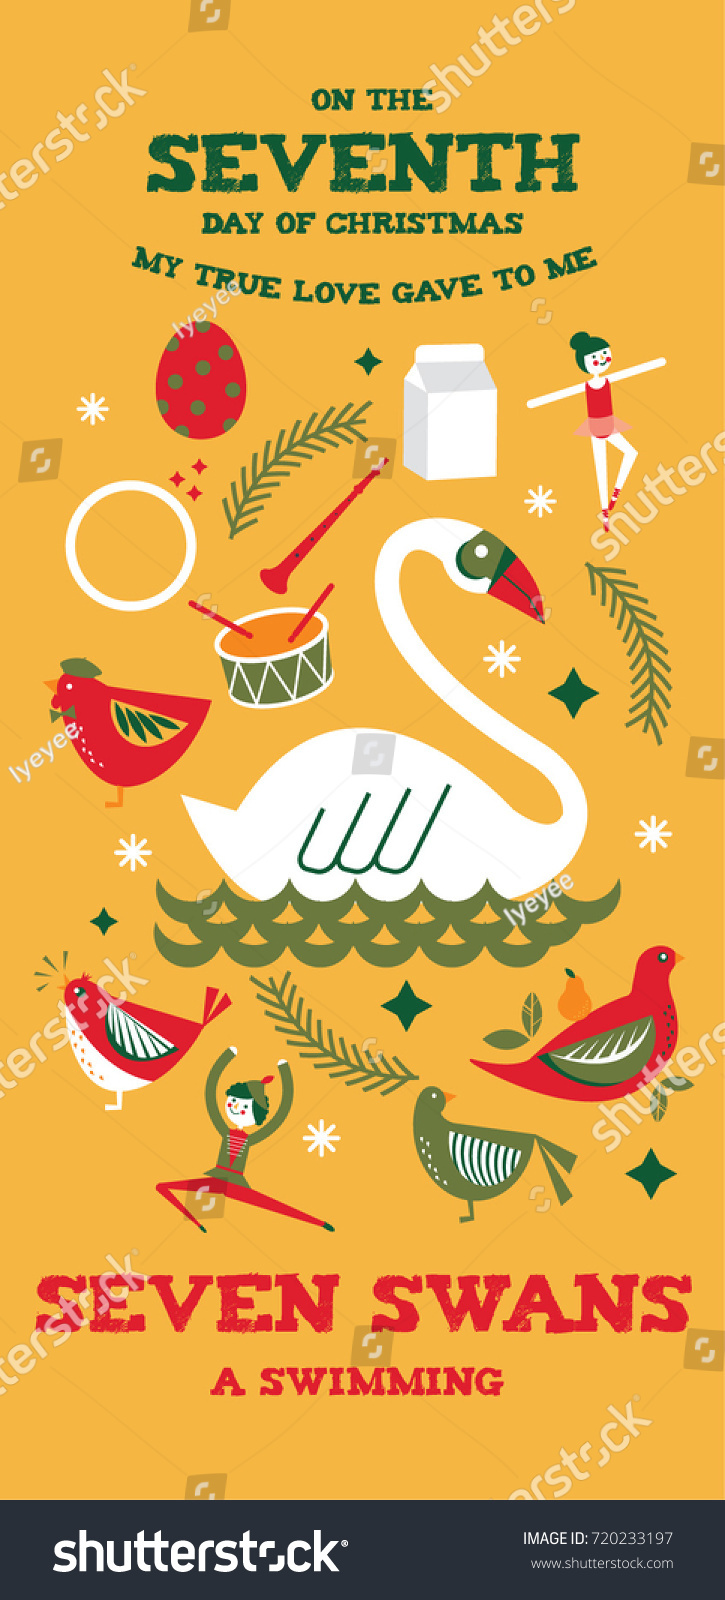 medium resolution of seventh day of christmas from the twelve days of christmas greetings template vector illustration